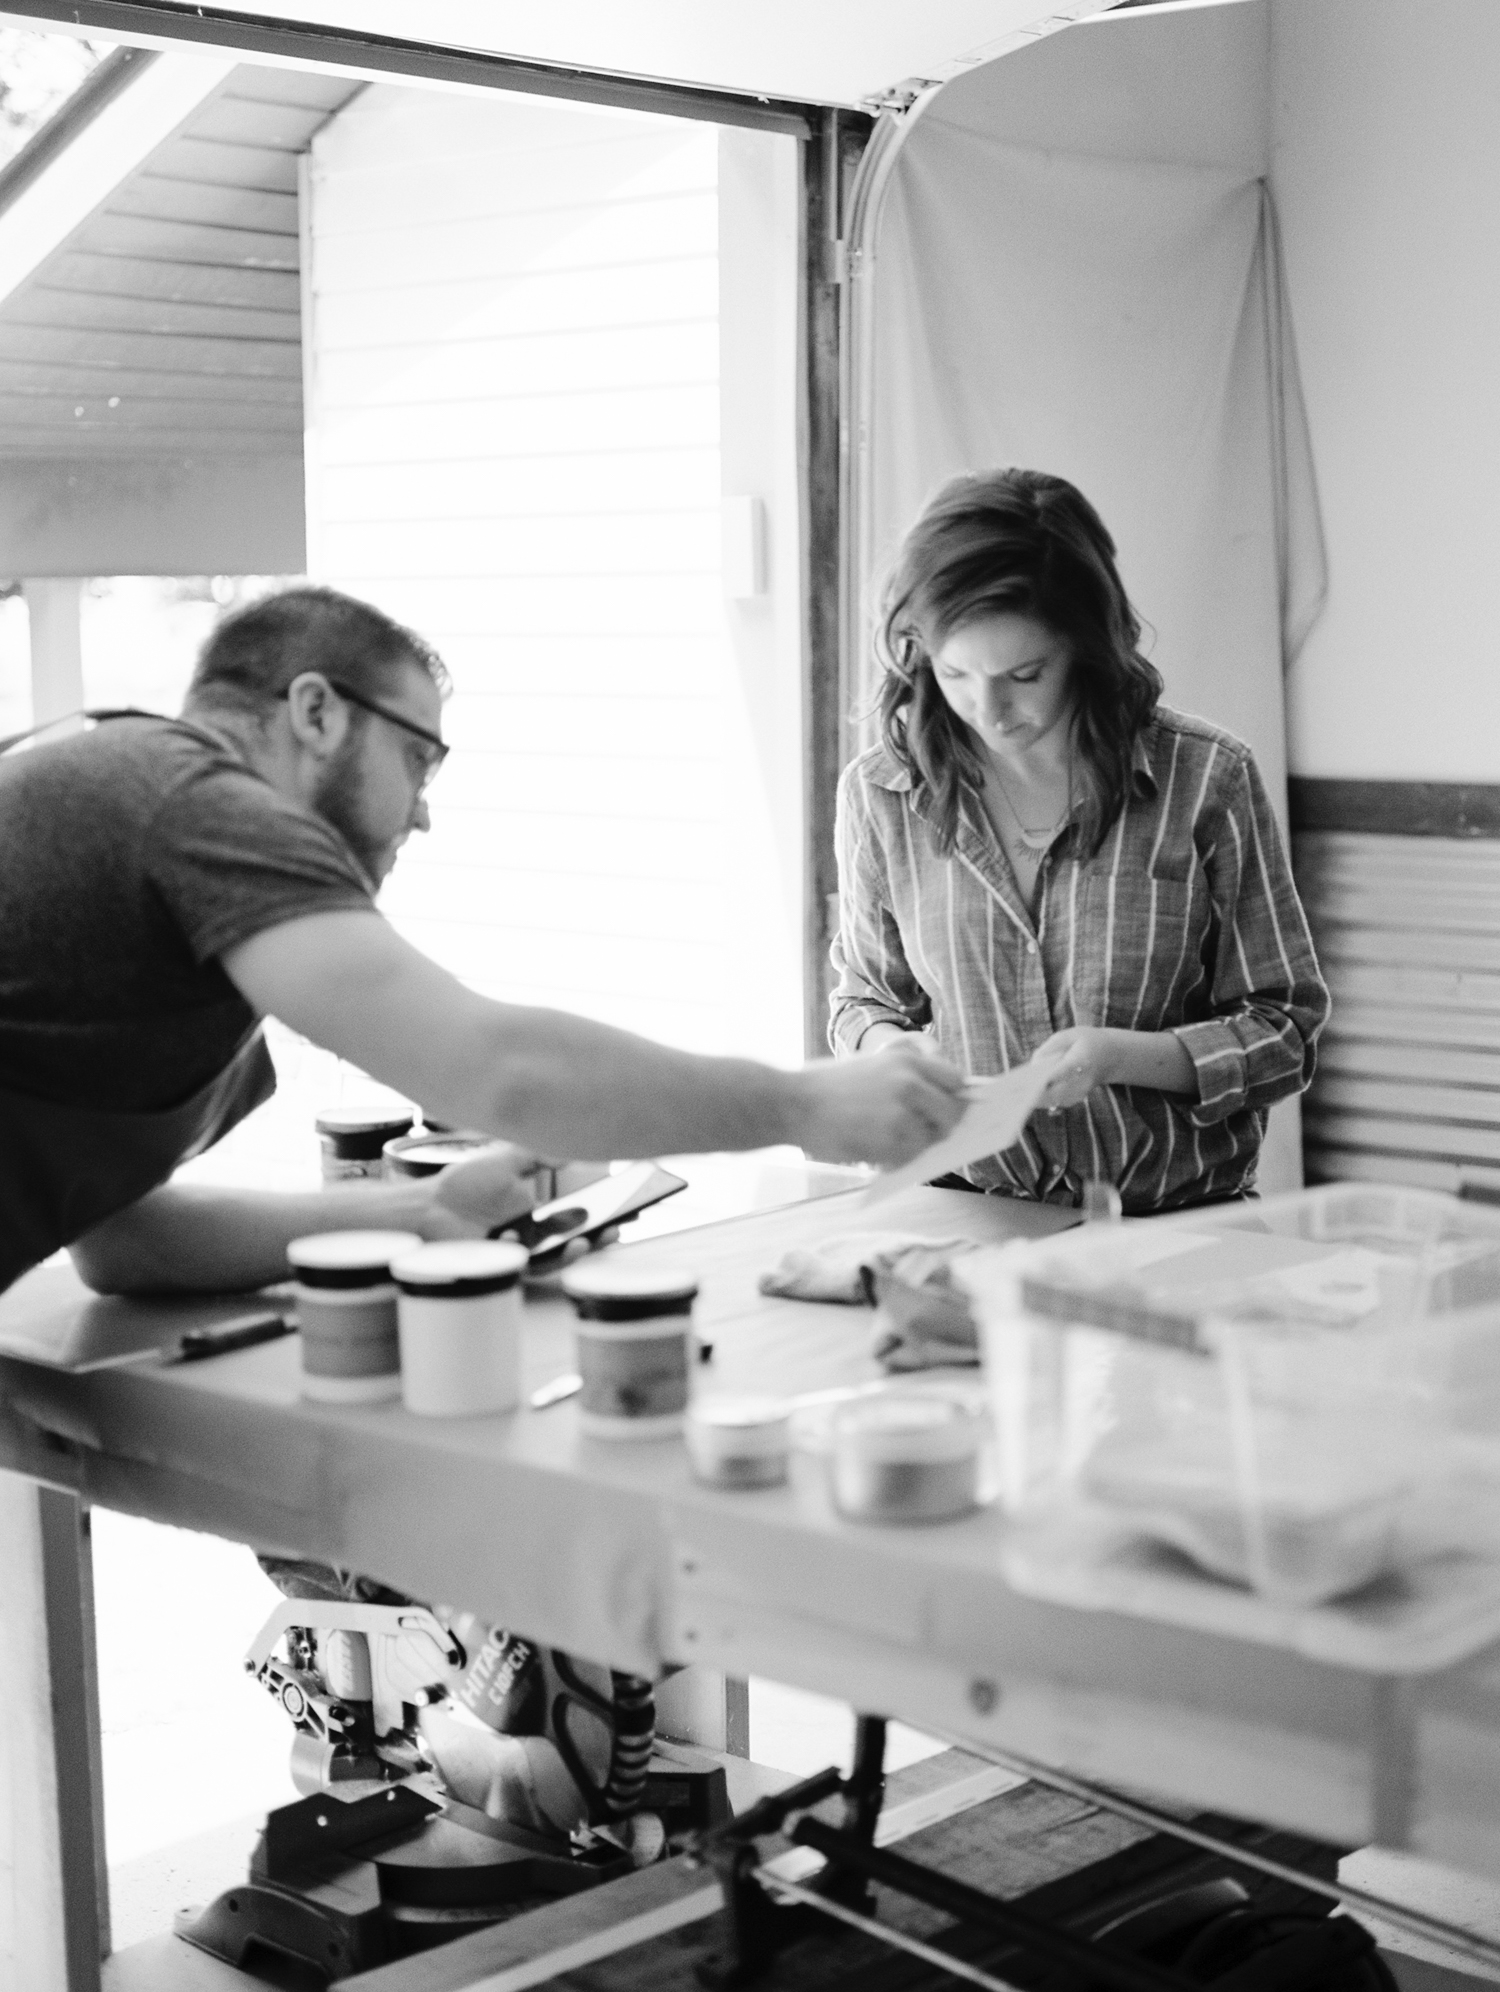 A stationer works with her husband in their letterpress studio during brand photos in Michigan